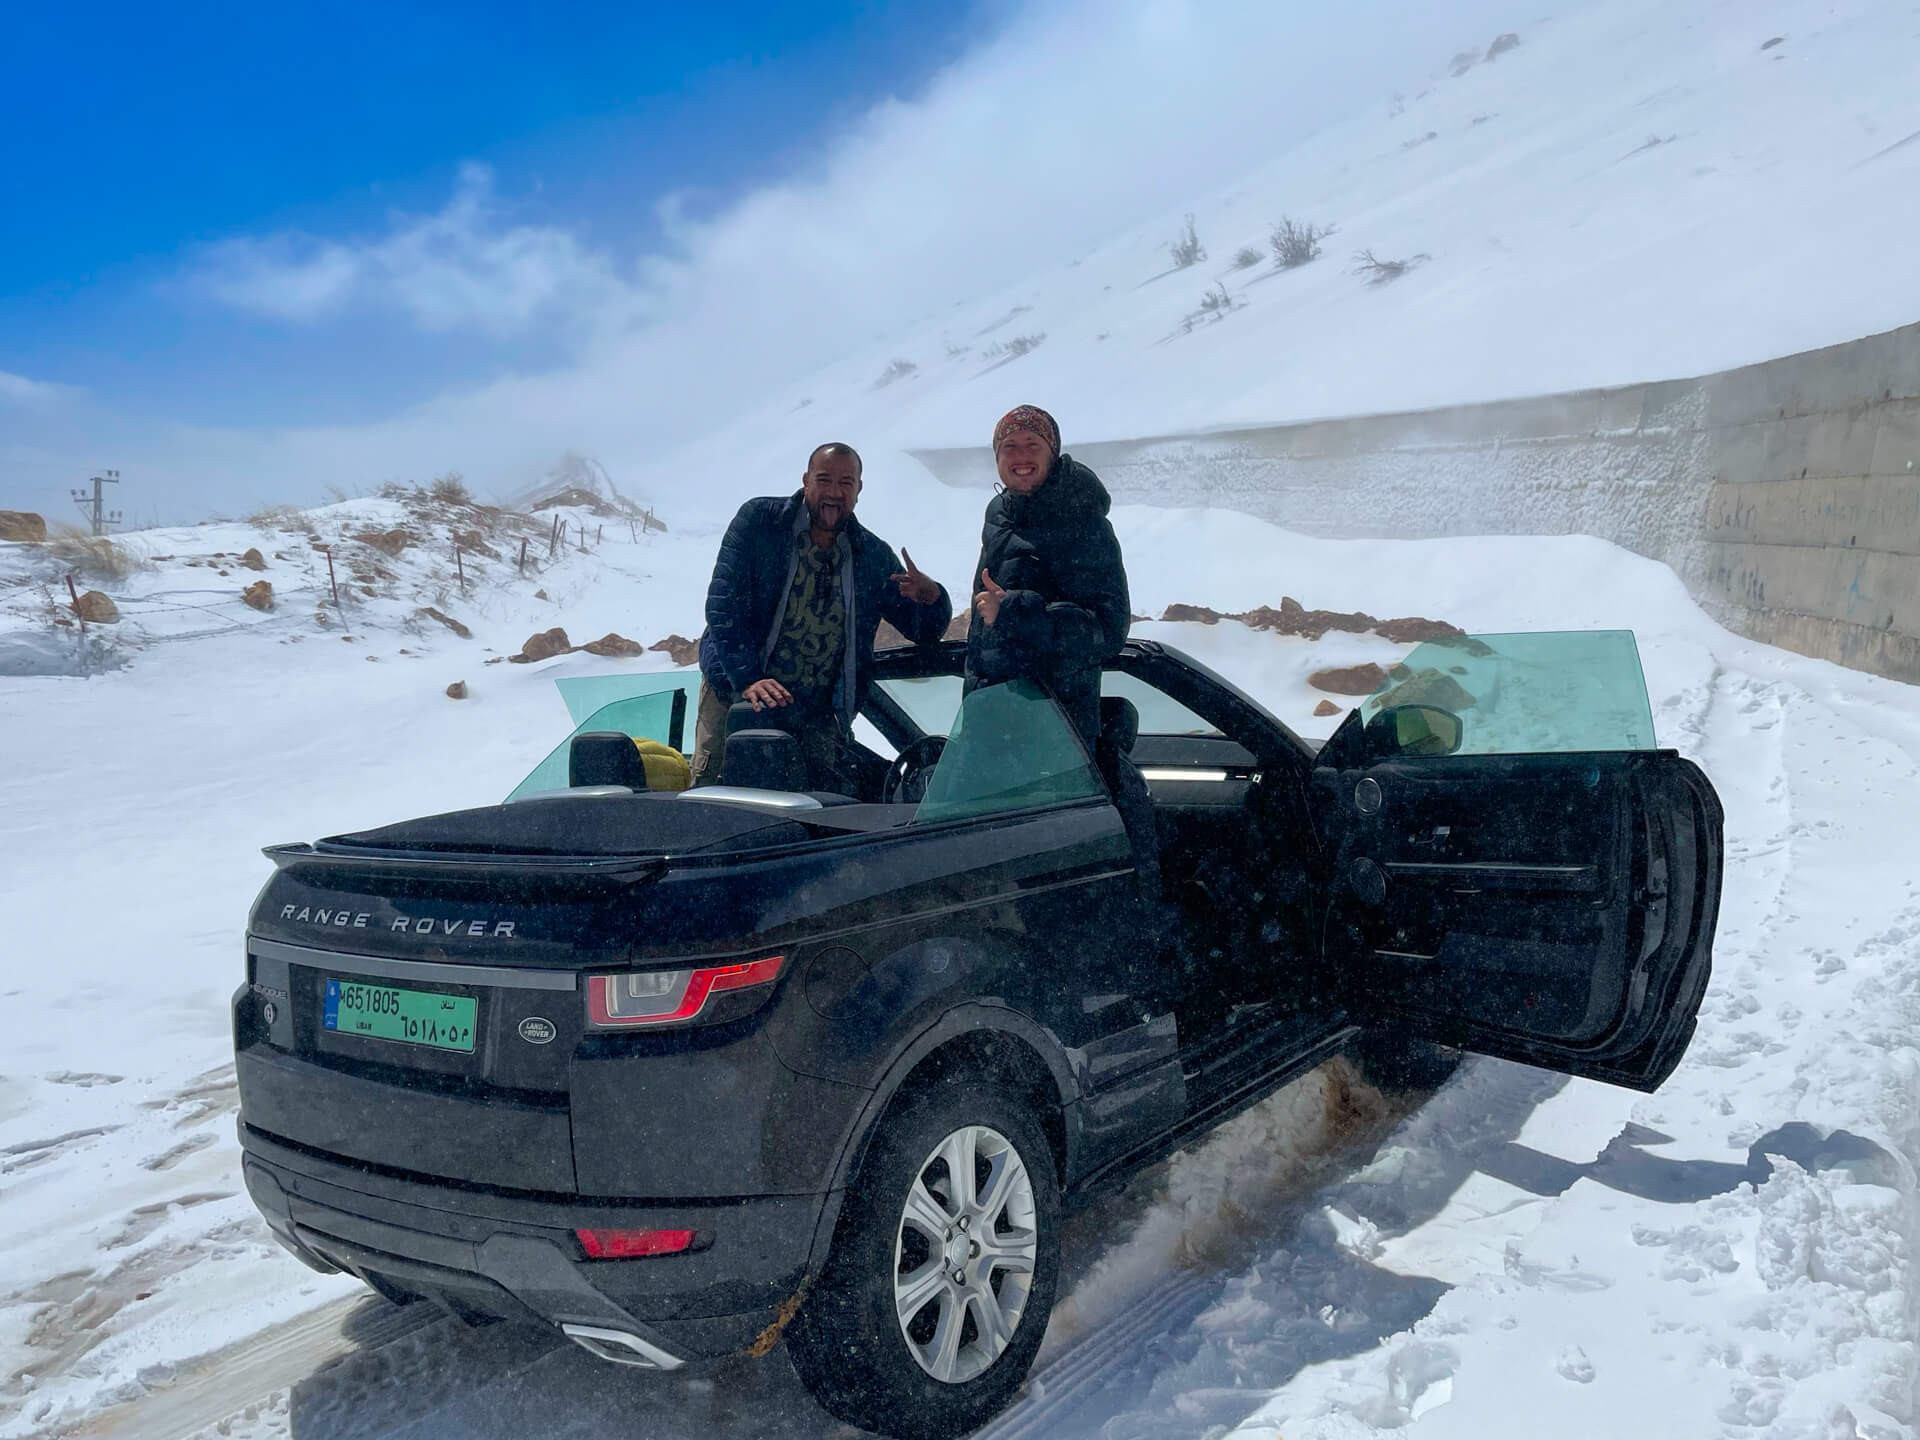 Reza and I posing on the convertible in the snow.